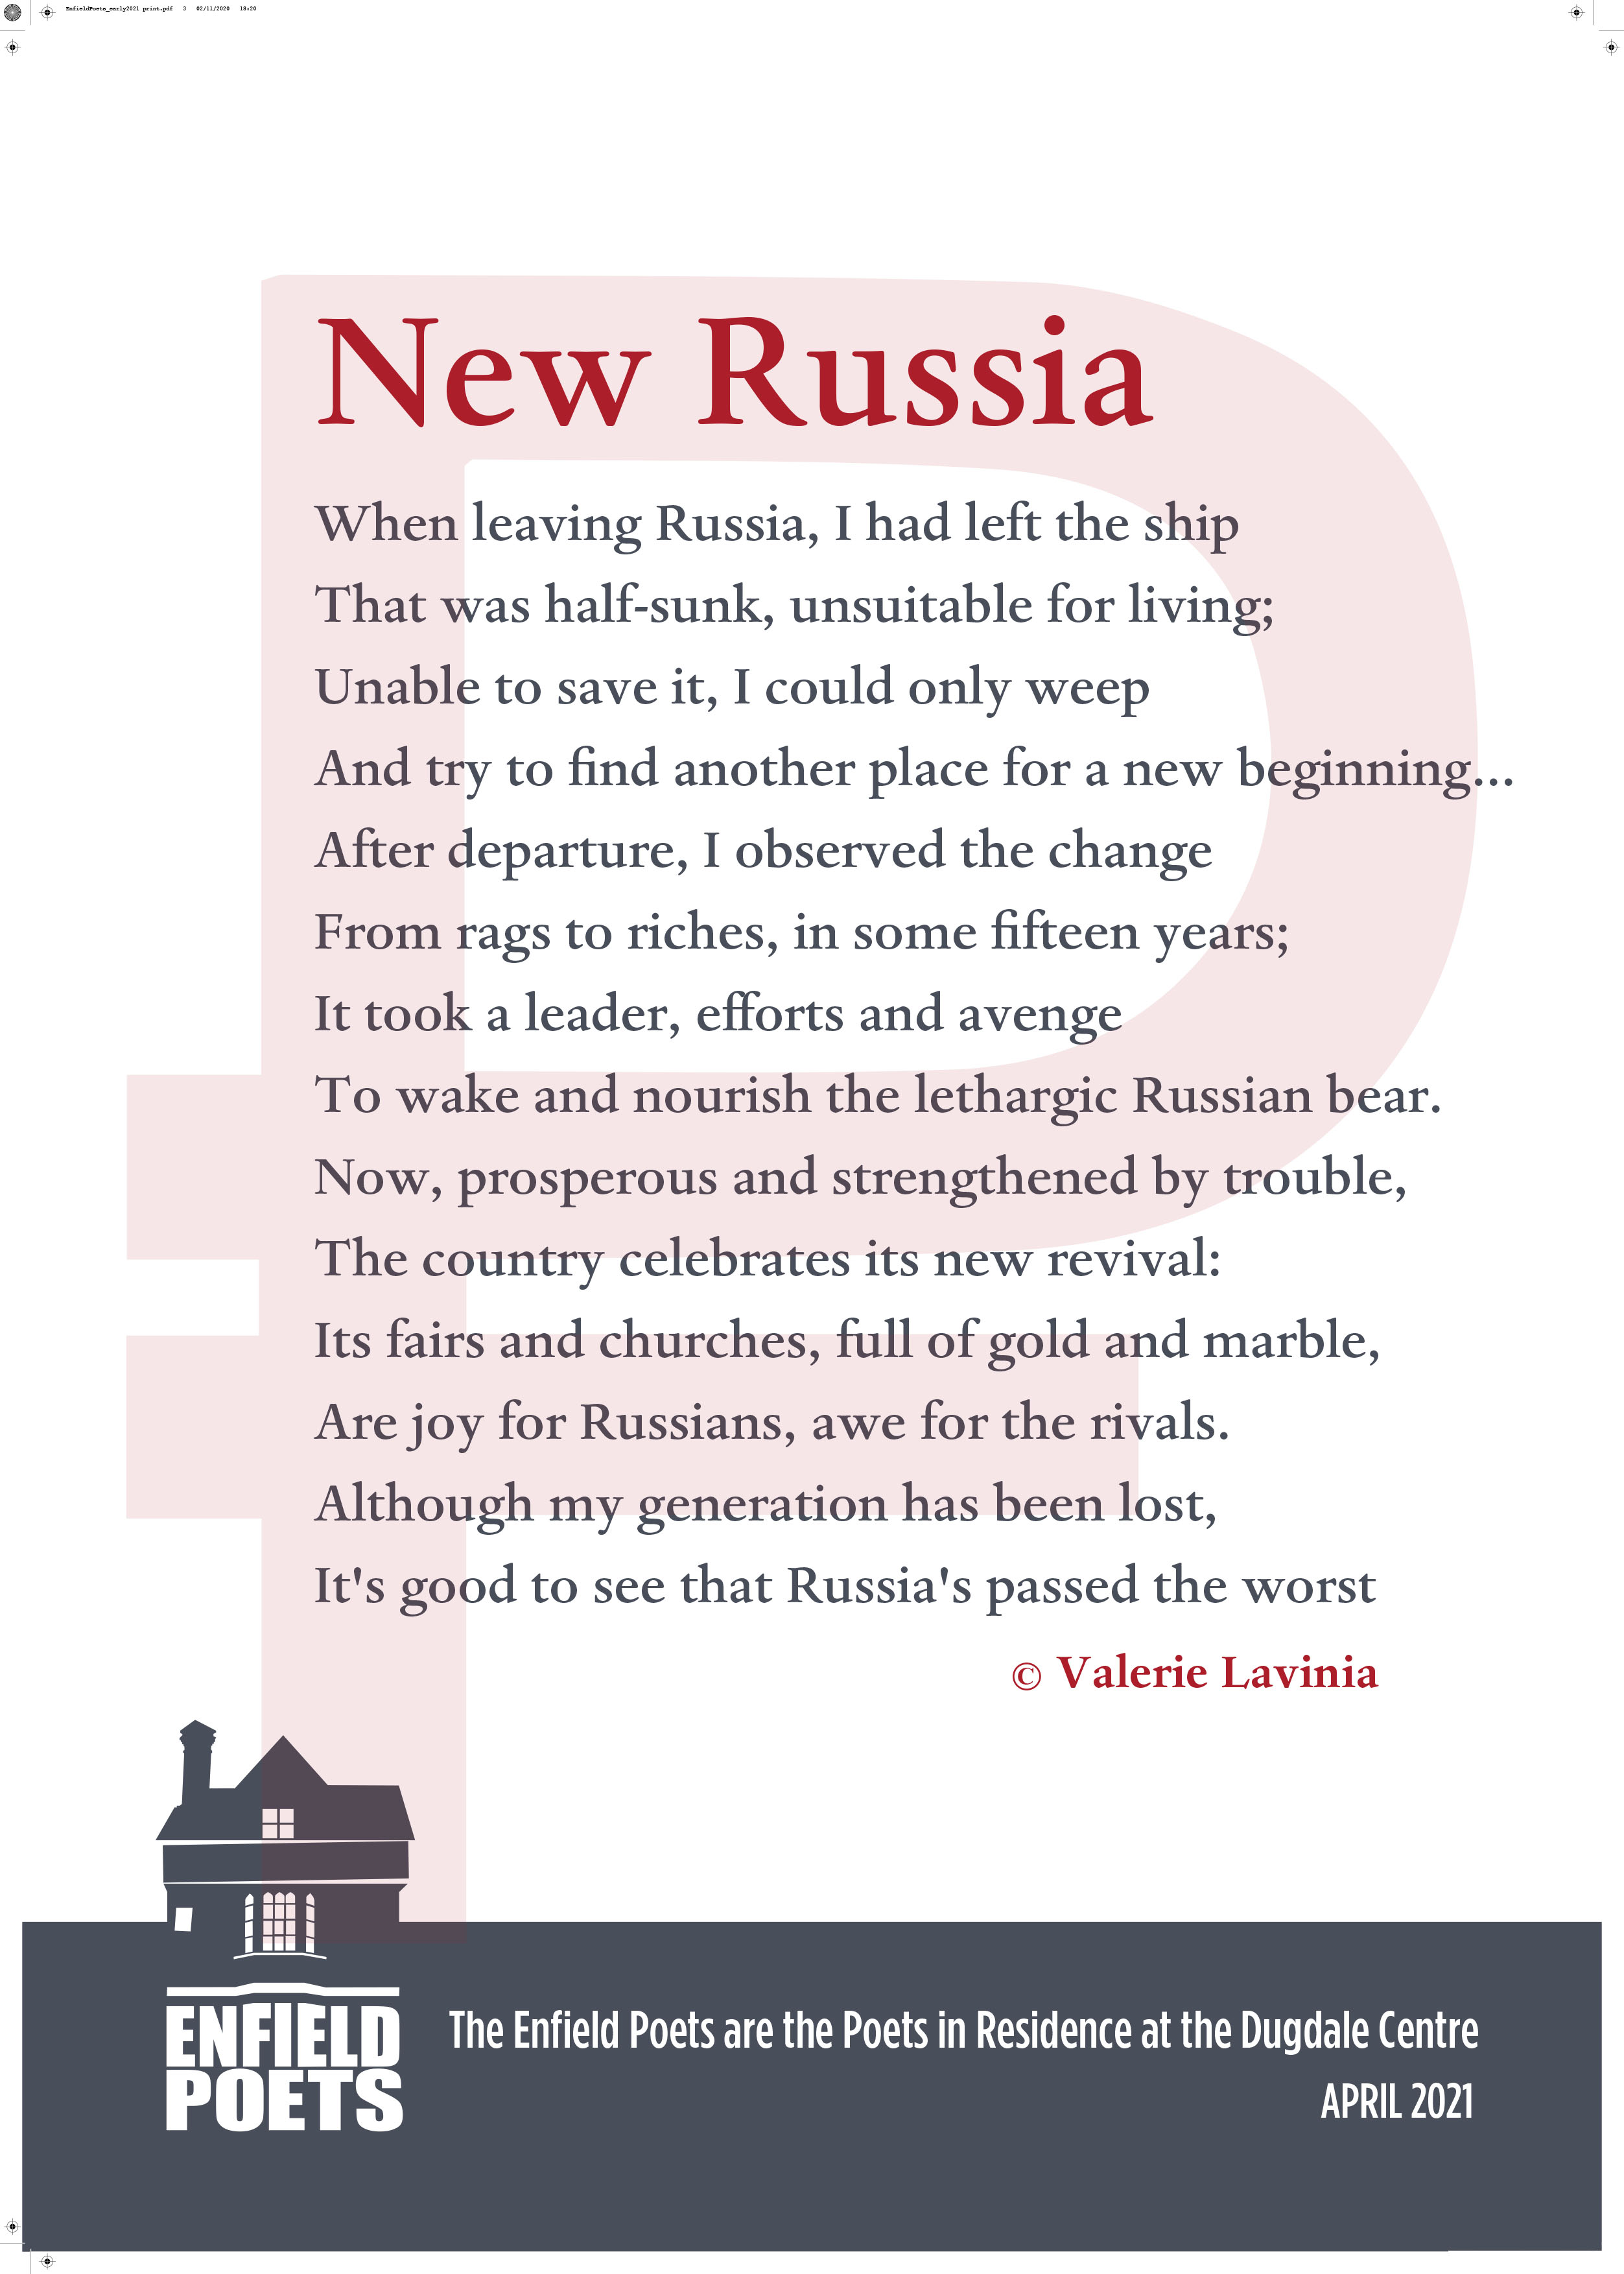 New Russia by Valerie Lavinia